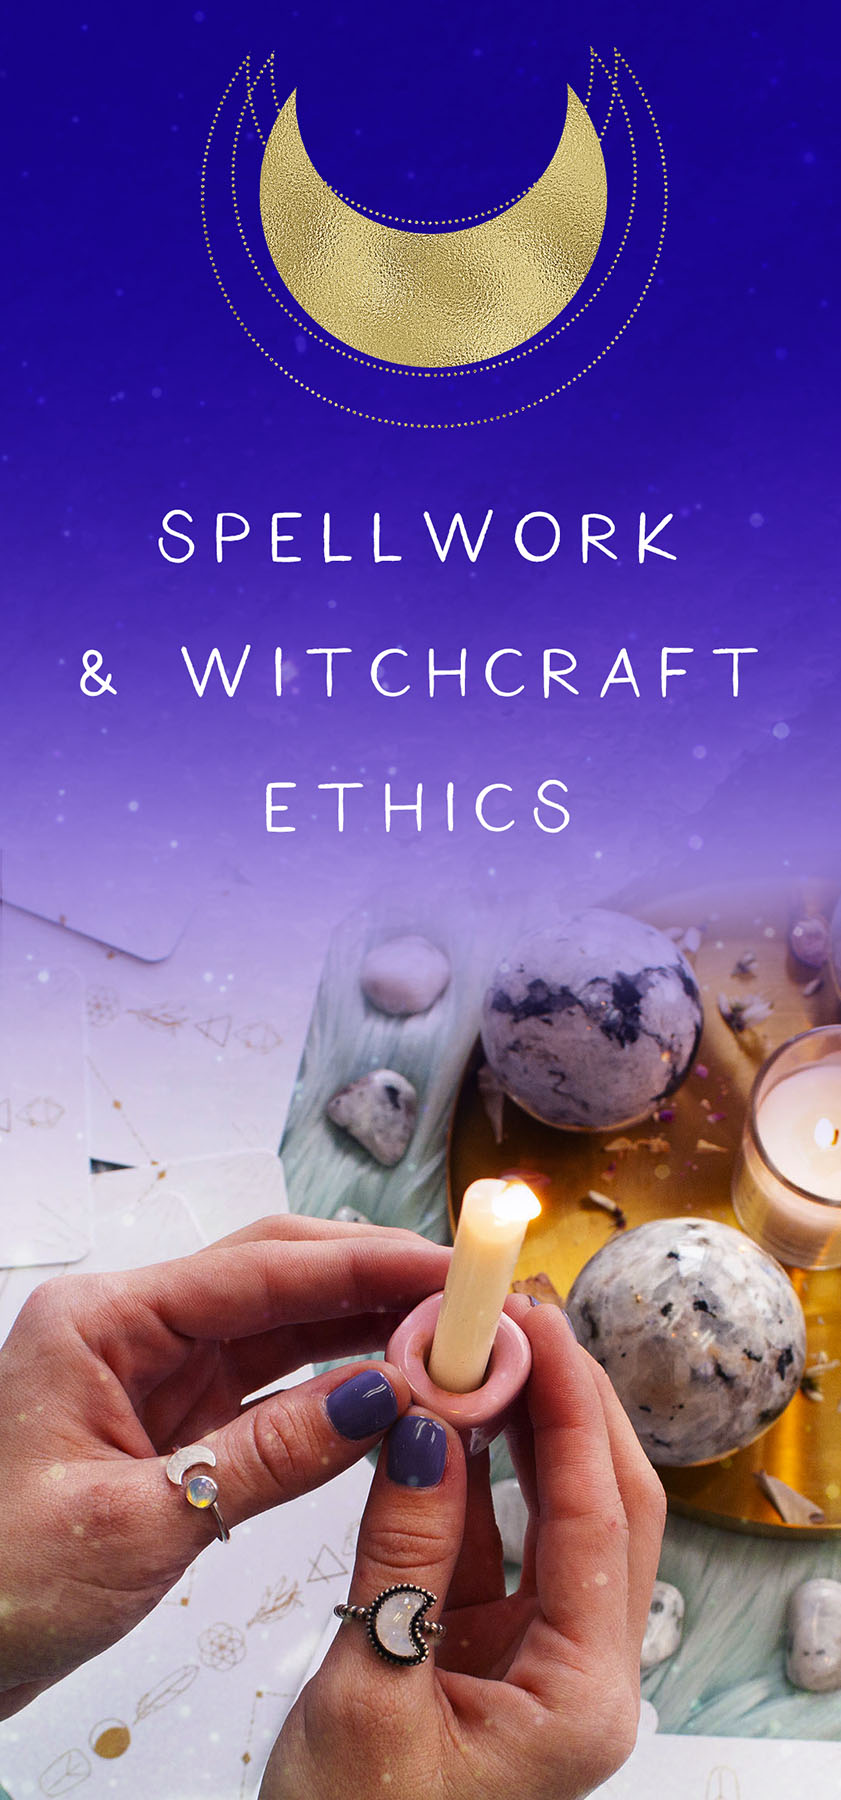 spellwork and witchcraft ethics eryn johnson cultural appropriation